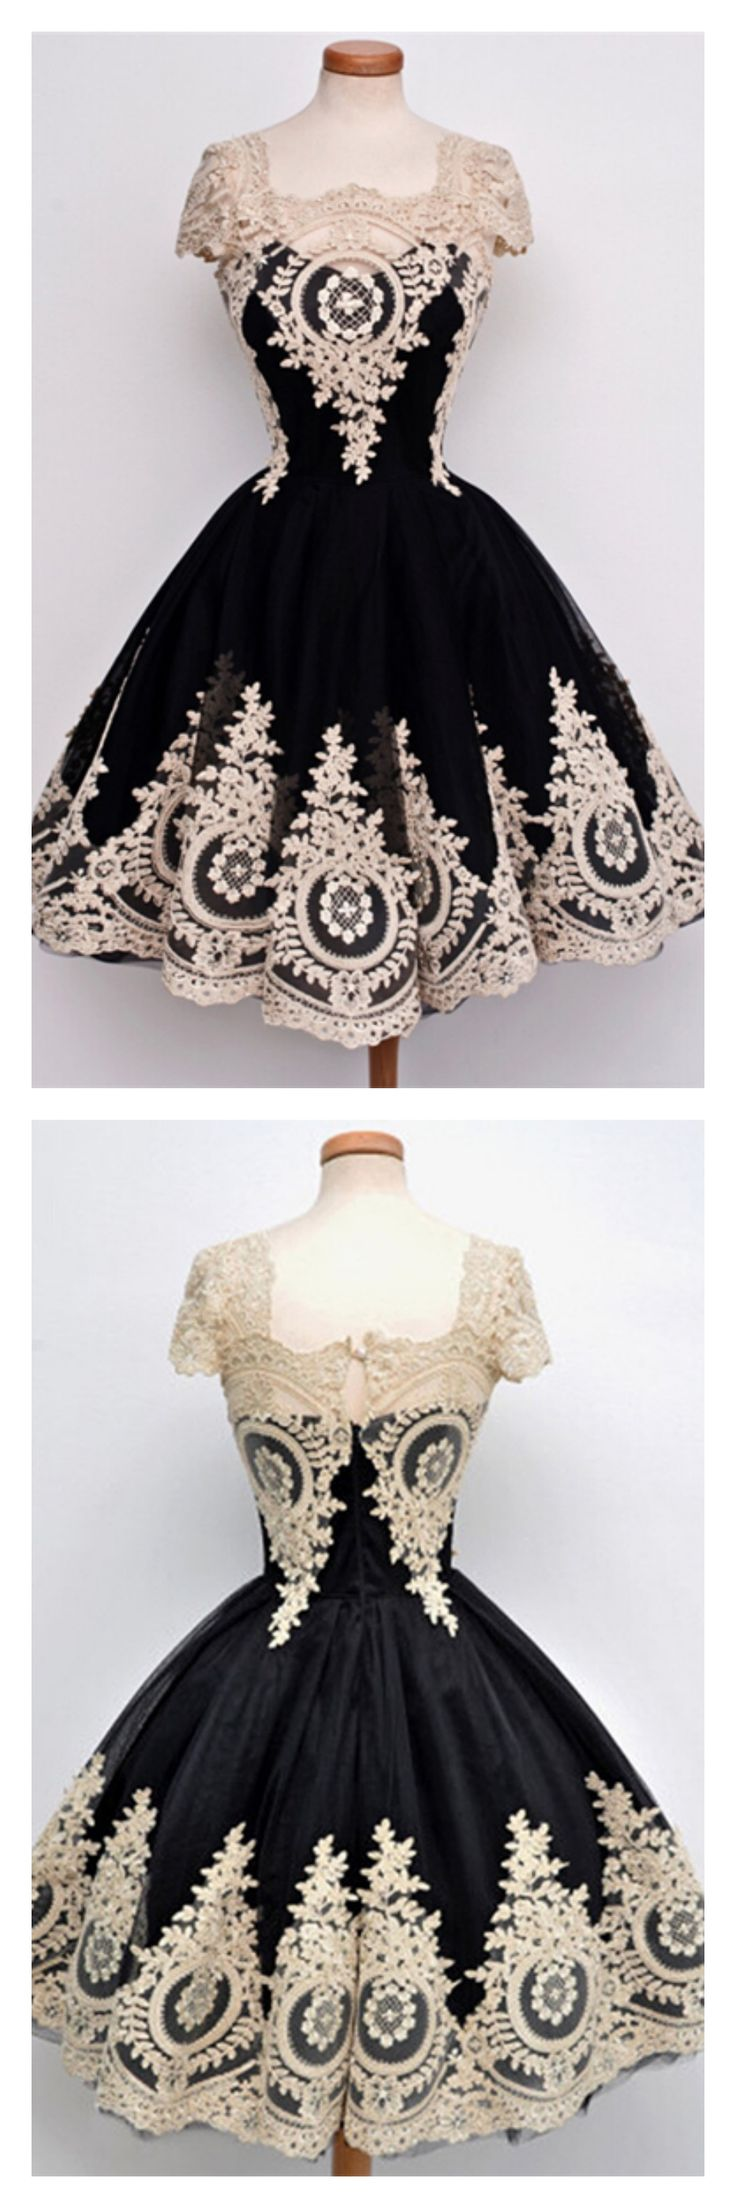 2017 gorgeous homecoming dresses, vintage short prom dresses, applique party dresses # SIMIBridal